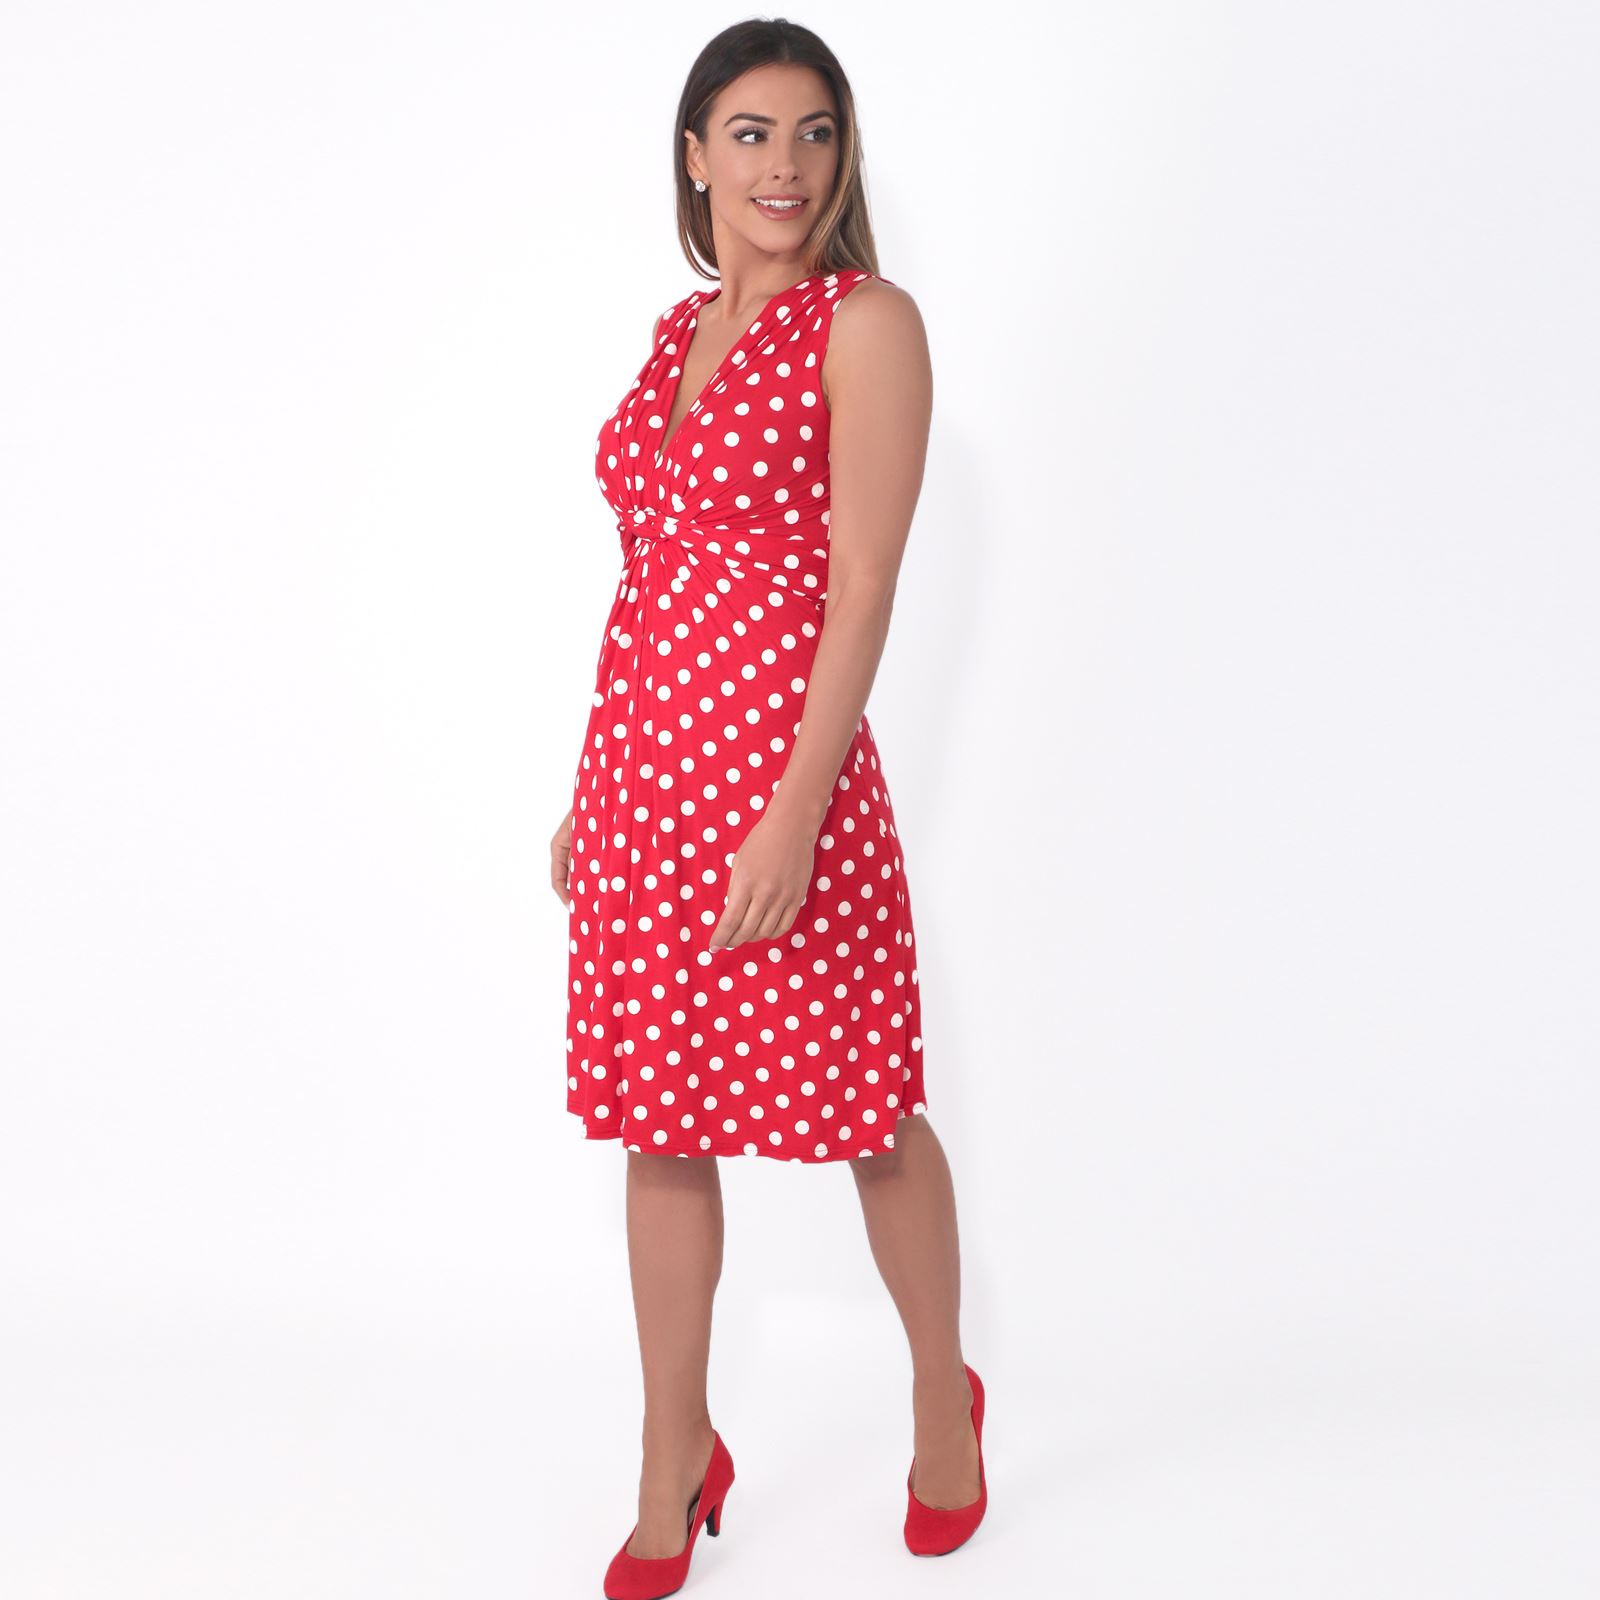 Womens-Polka-Dot-Retro-Dress-Pleated-Skirt-Wrap-Mini-V-Neck-Top-Swing-Party thumbnail 33